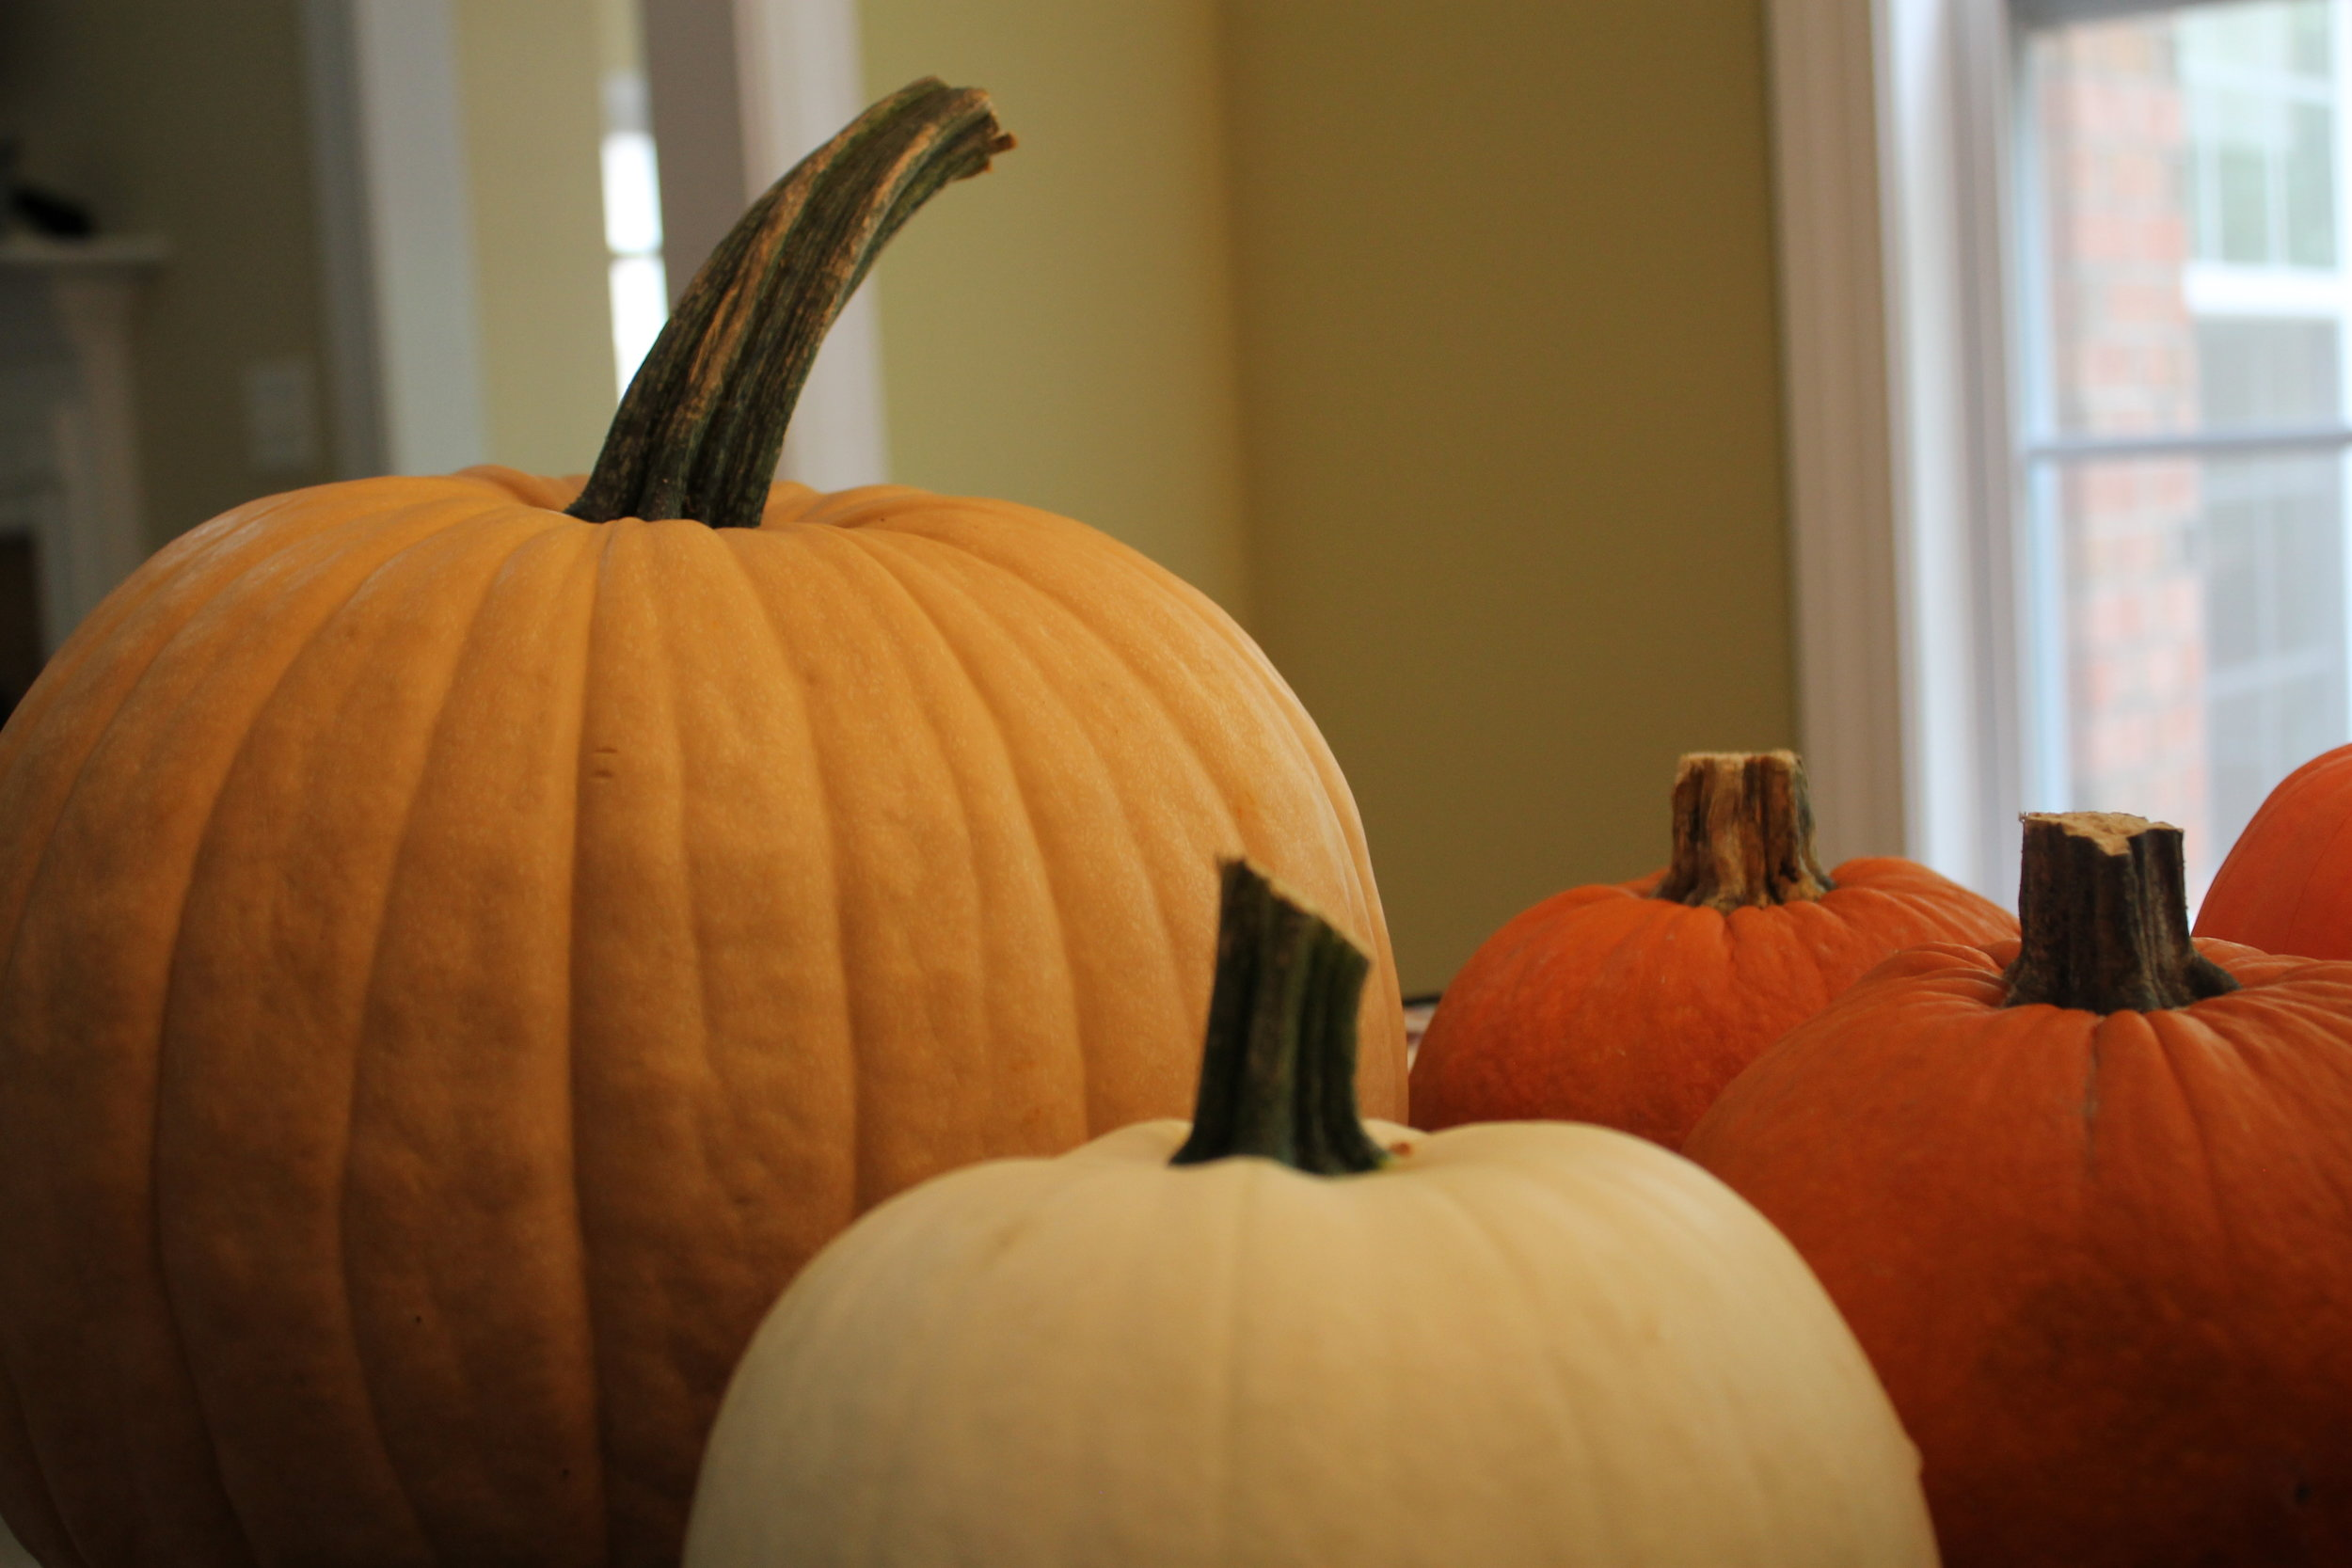 Before you can start decorating you must pick a pumpkin. Some people opt out for a plastic pumpkin but if you're wanting to be a little more traditional, stop by your local pumpkin patch or Walmart to grab that round orange bundle of joy.